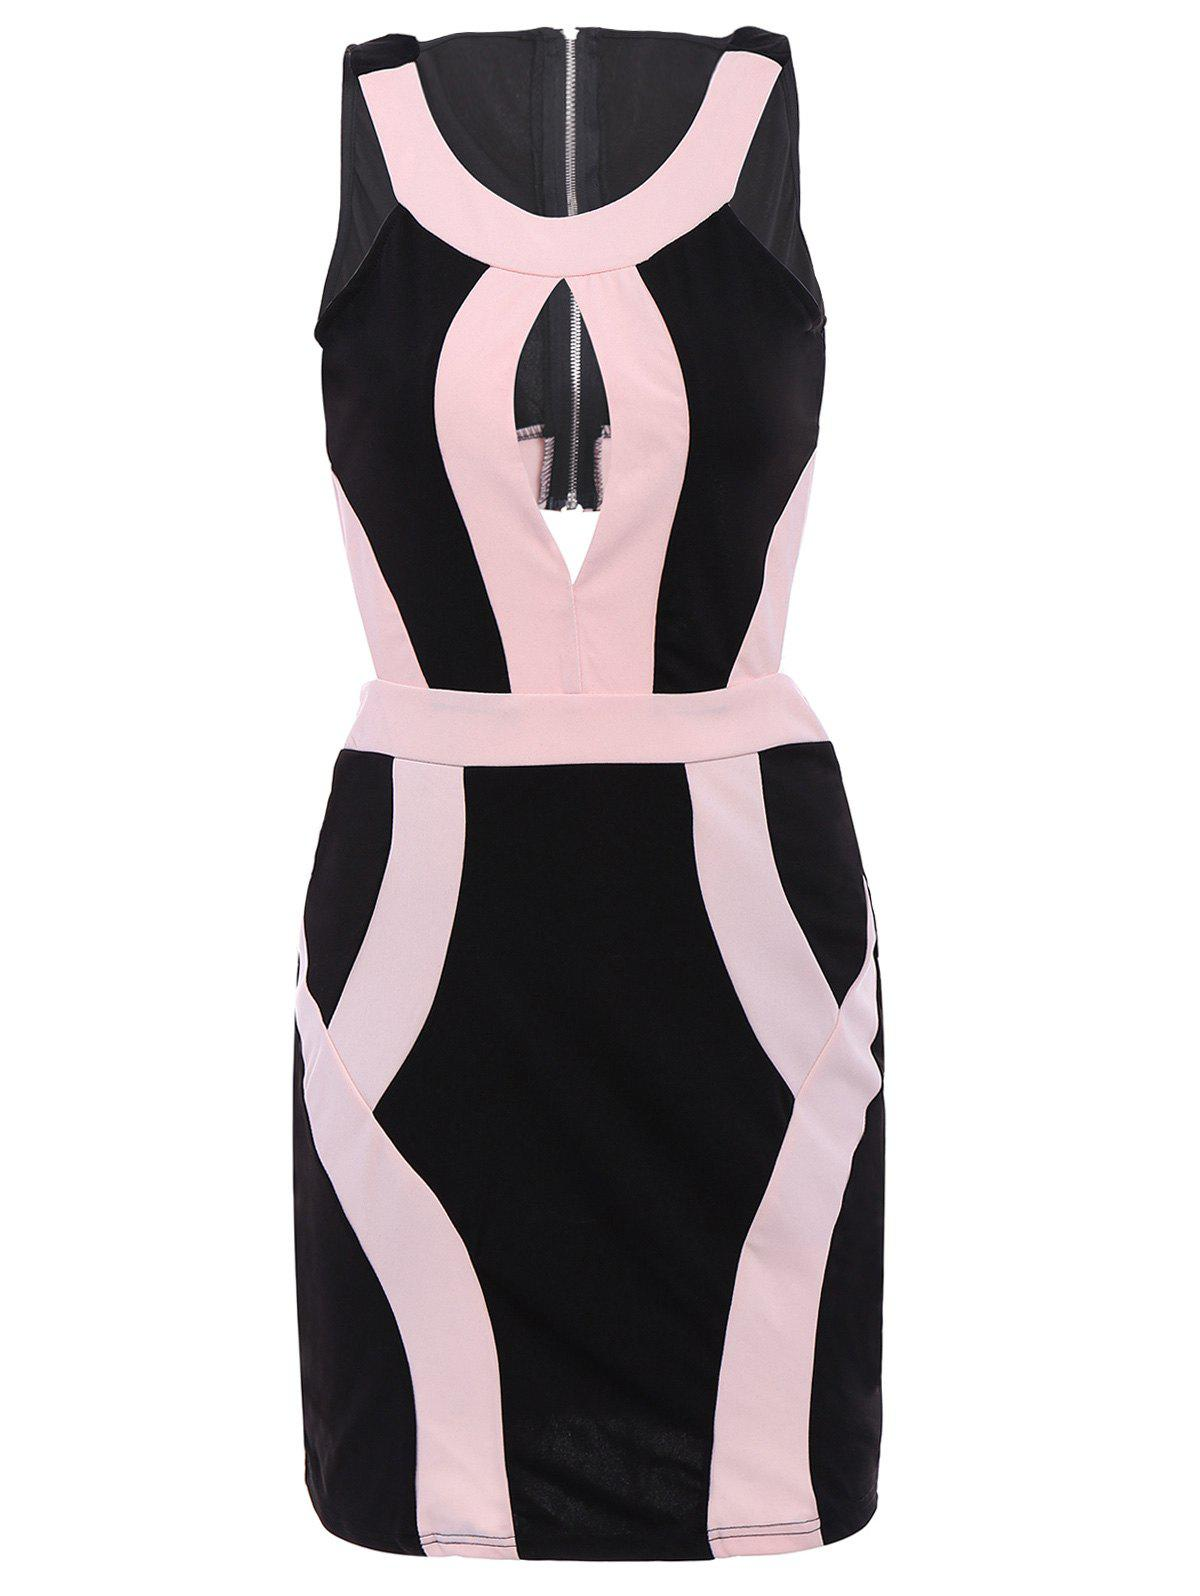 Alluring Women's Scoop Neck Sleeveless Hollow Out Color Block Dress - BLACK/PINK S